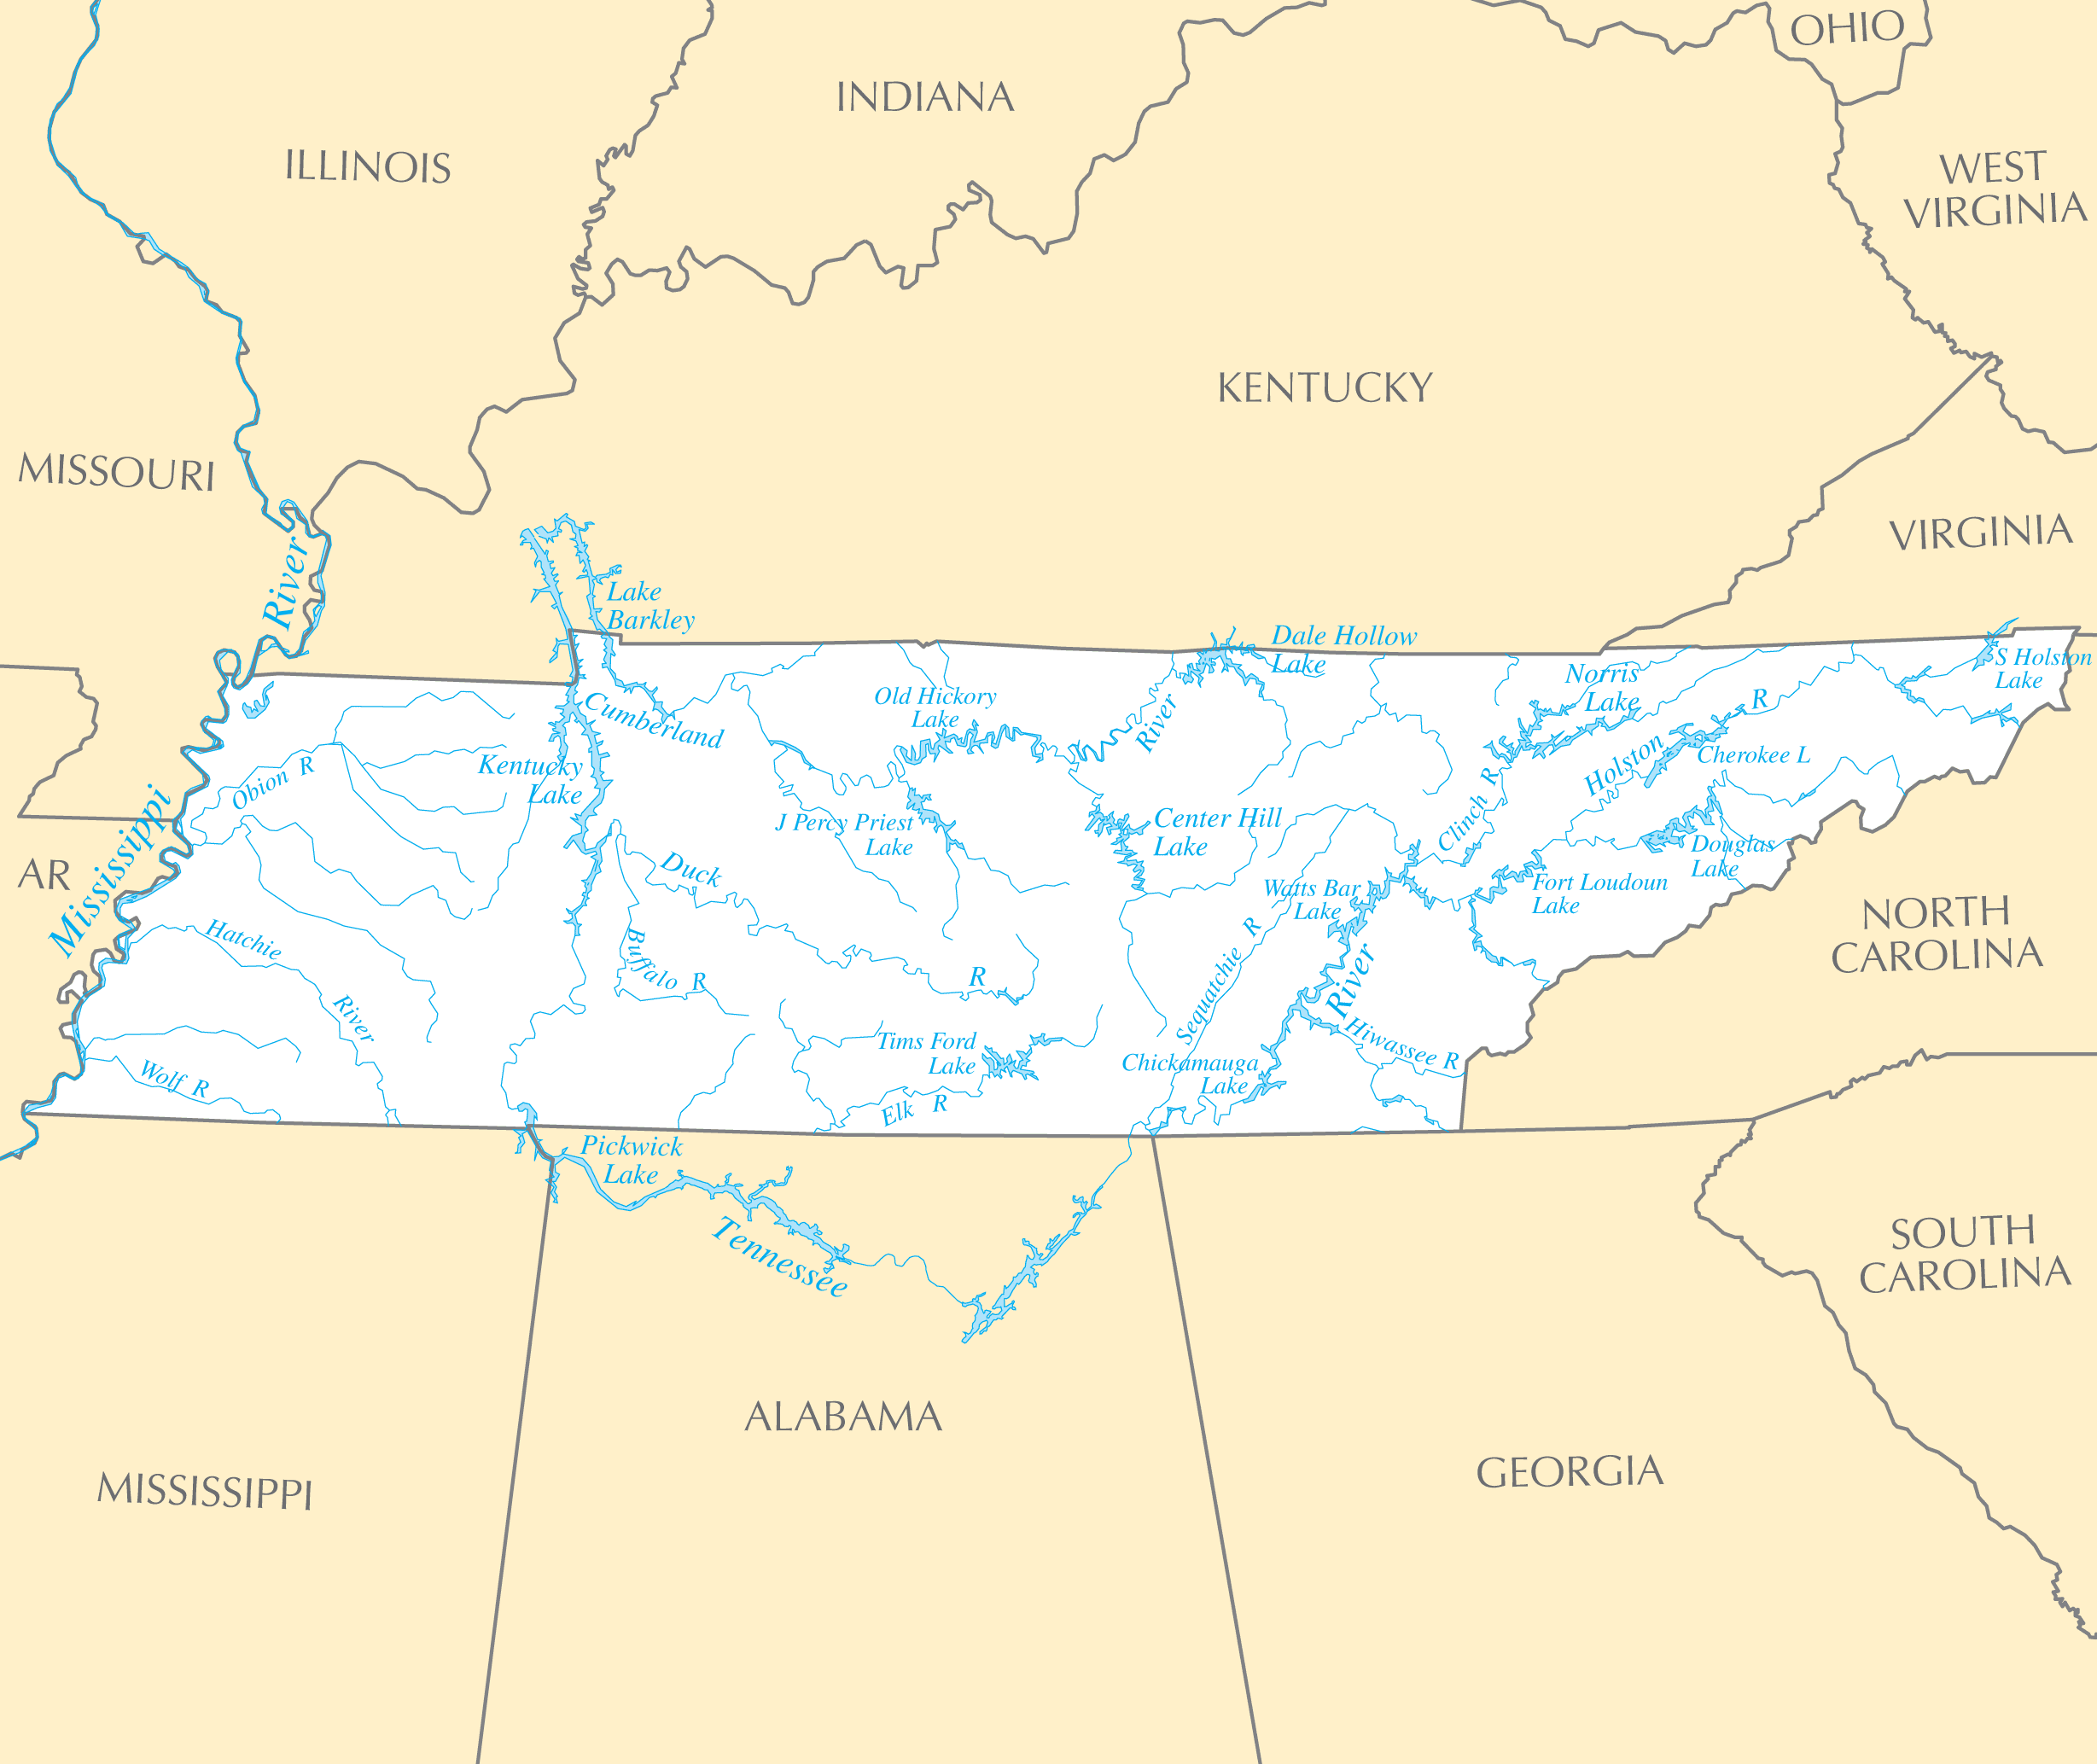 Tennessee Rivers And Lakes Mapsofnet - Georgia map lakes